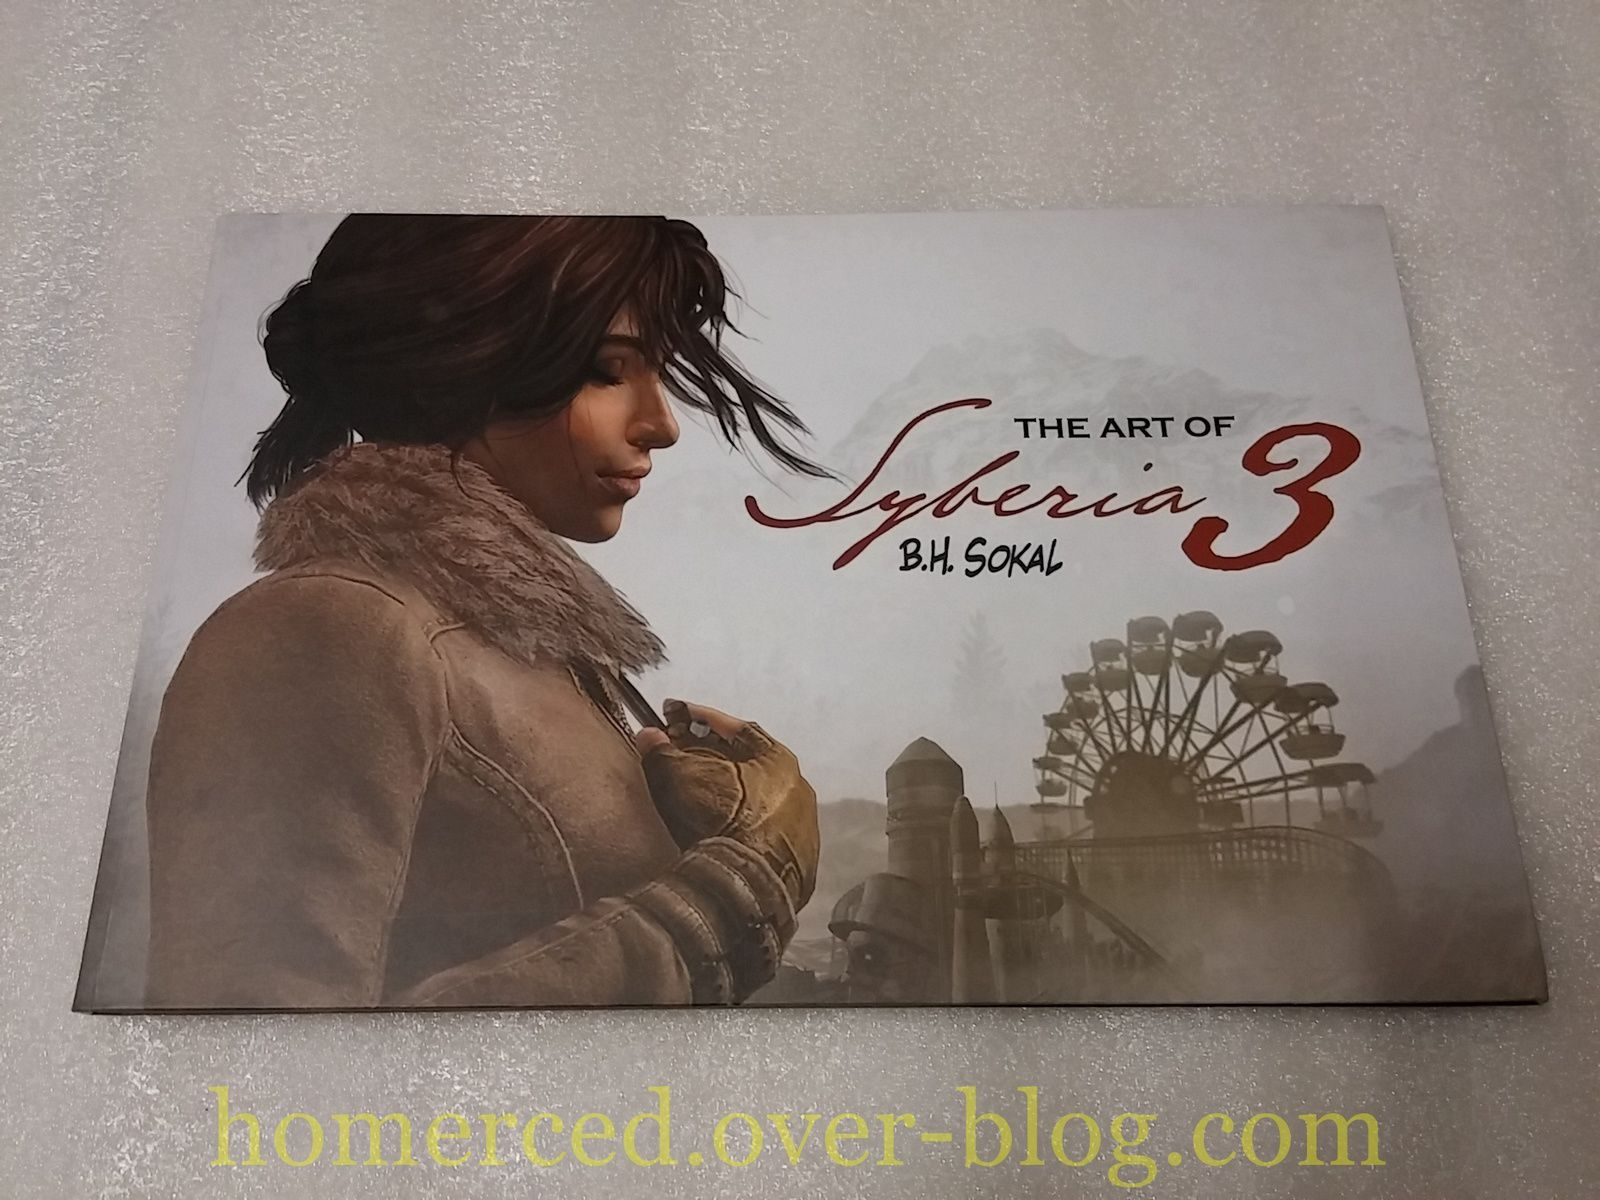 (unboxing) La version collector de Syberia 3 sur PC